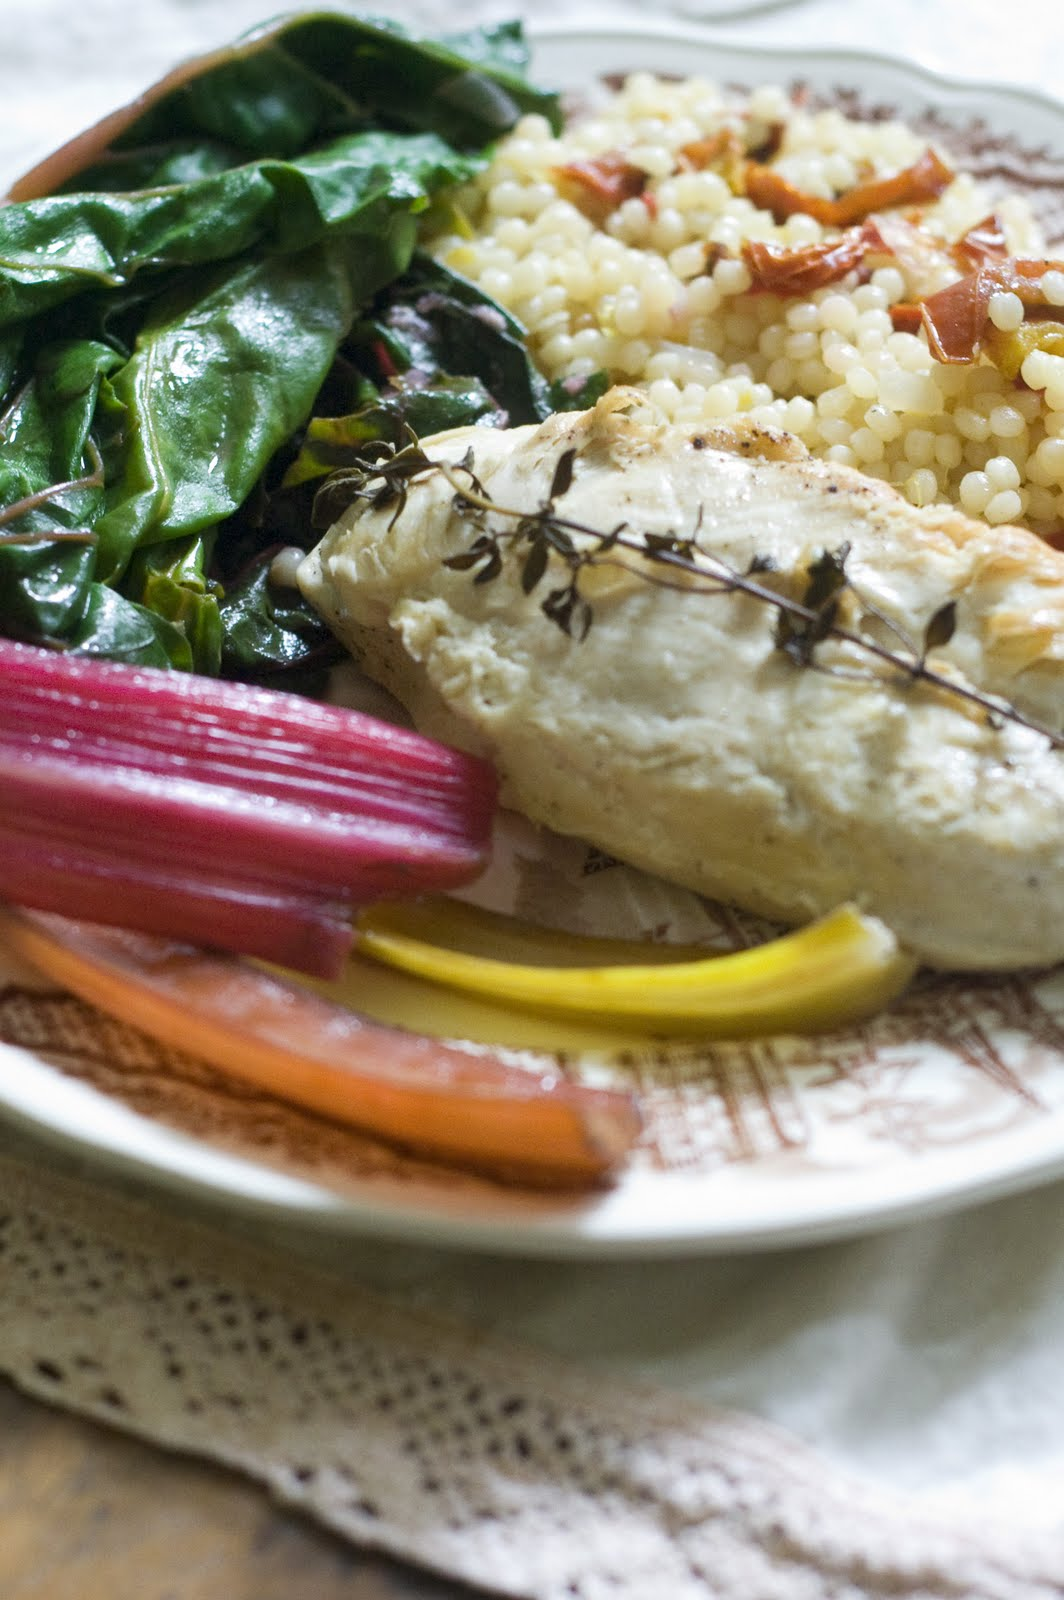 Pan seared chicken over israeli couscous with roasted tomatoes and go outside eat more greens work in the garden try new healthy foods these are just a few of the to dos on my list at least forumfinder Gallery